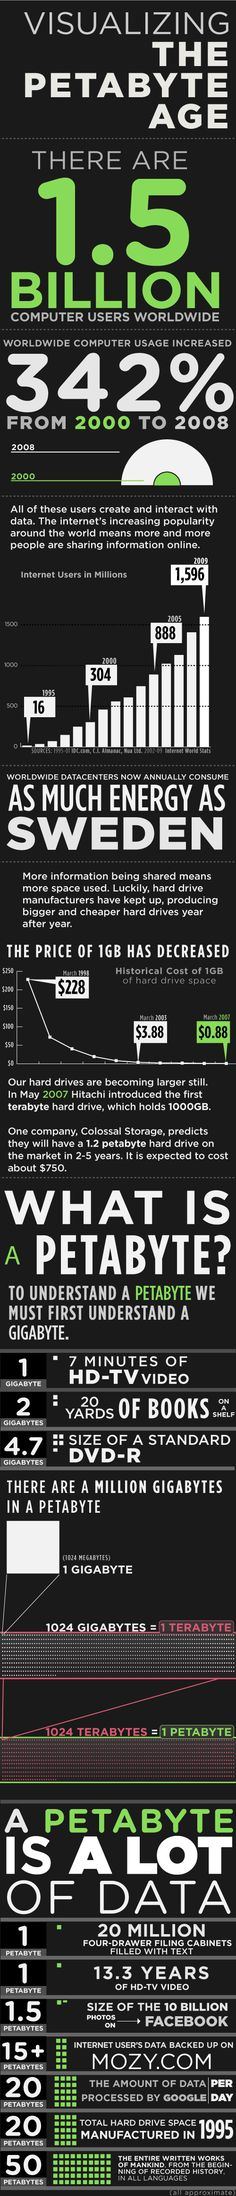 How Much Is A Petabyte?